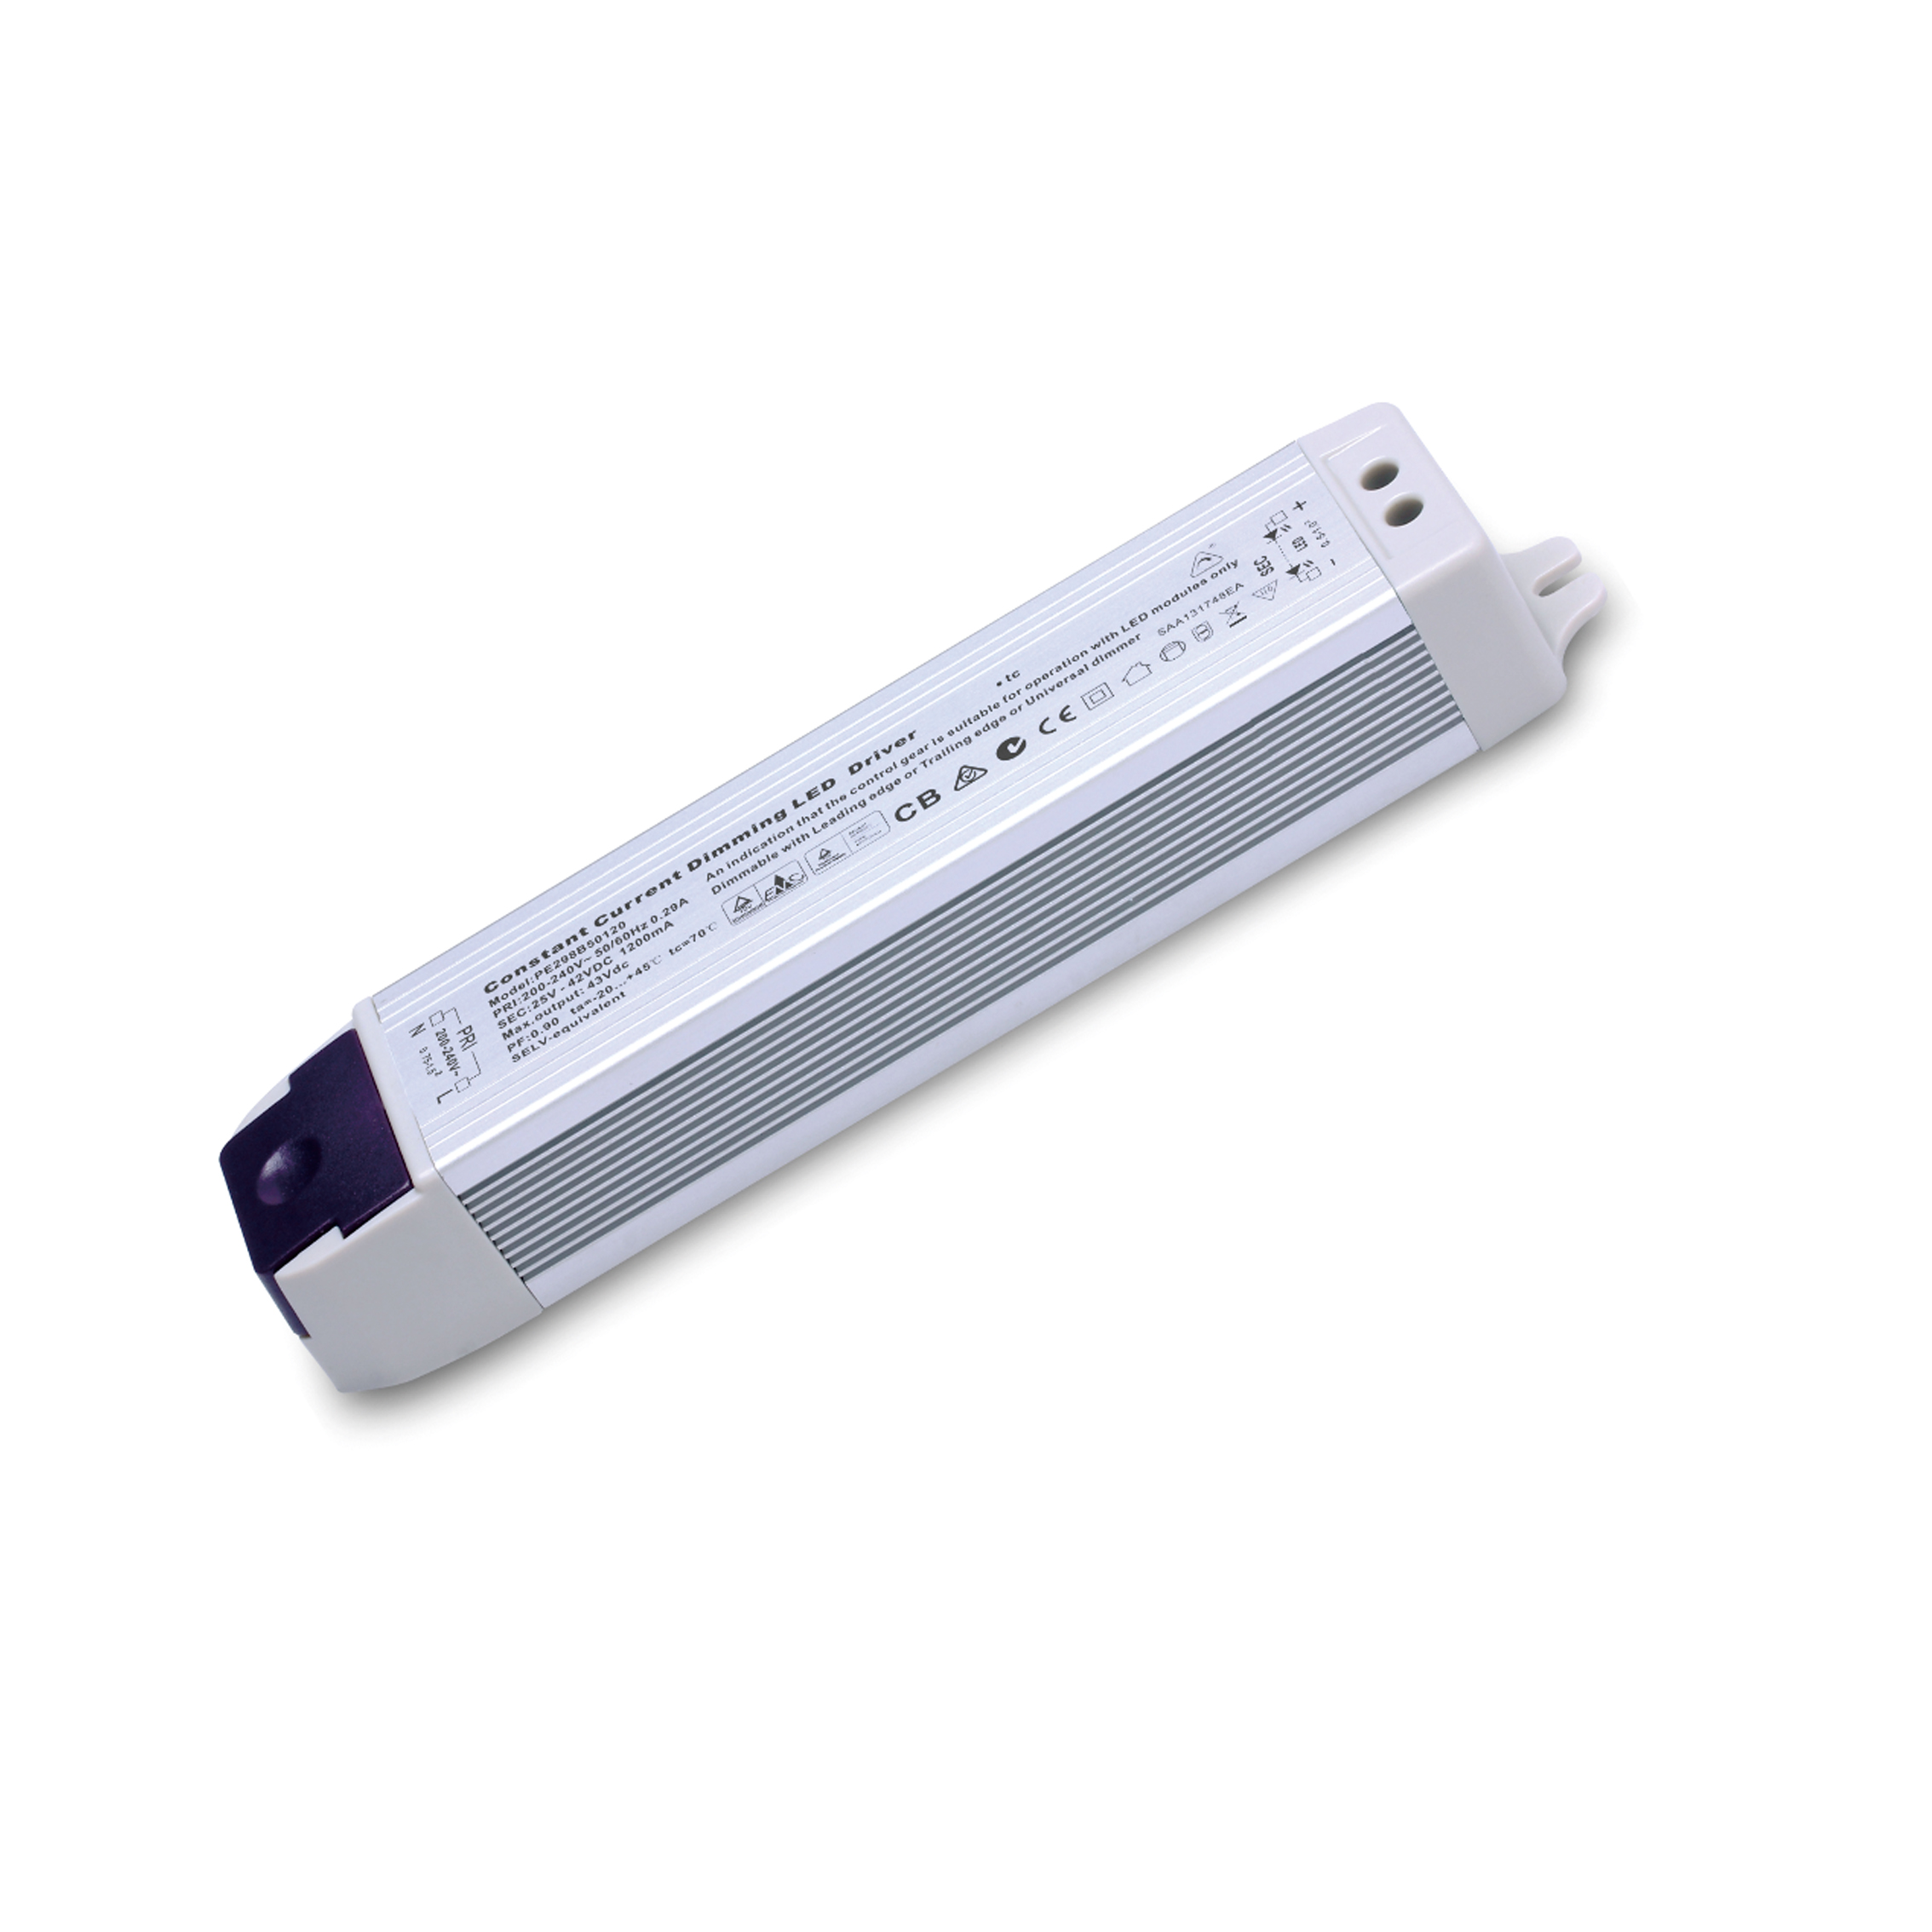 PE298B507043-70V 700ma DC 50W dimmable led driver with constant current output 3 years warranty